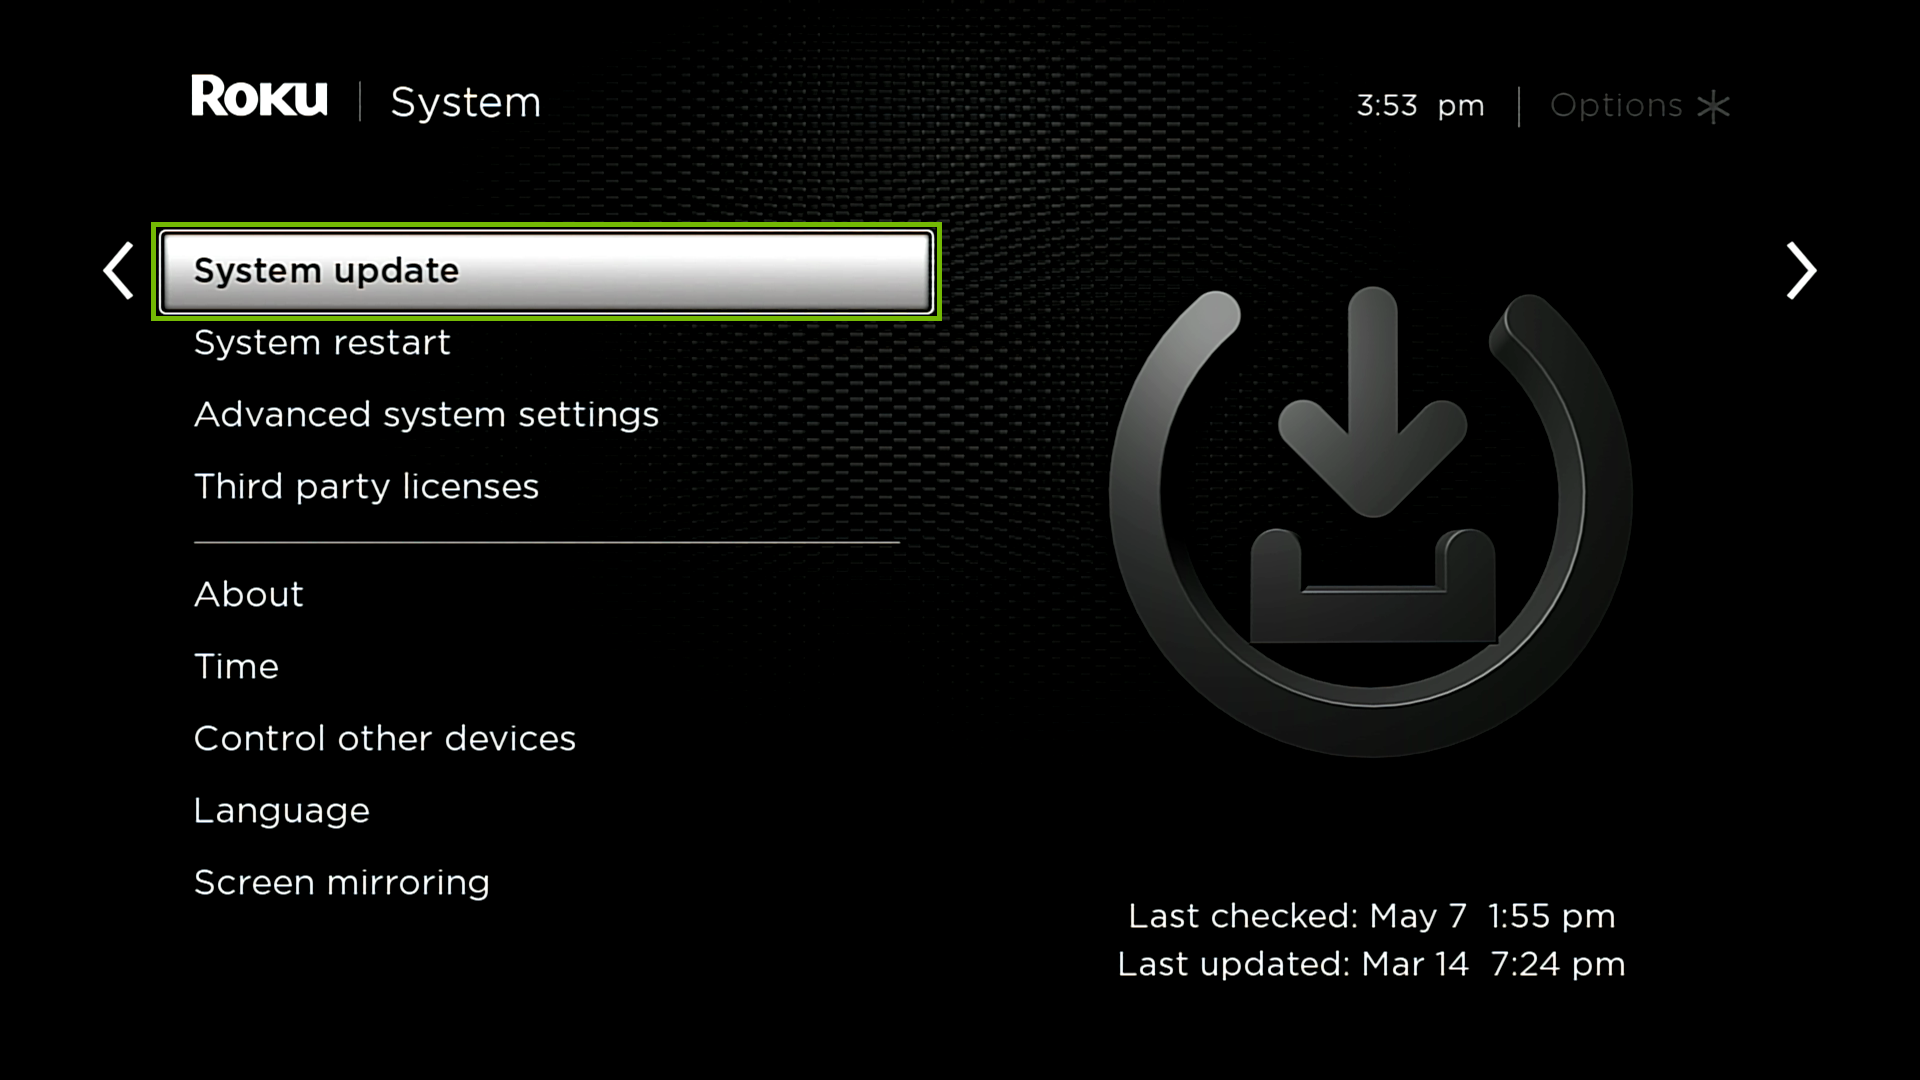 System with System update highlighted.